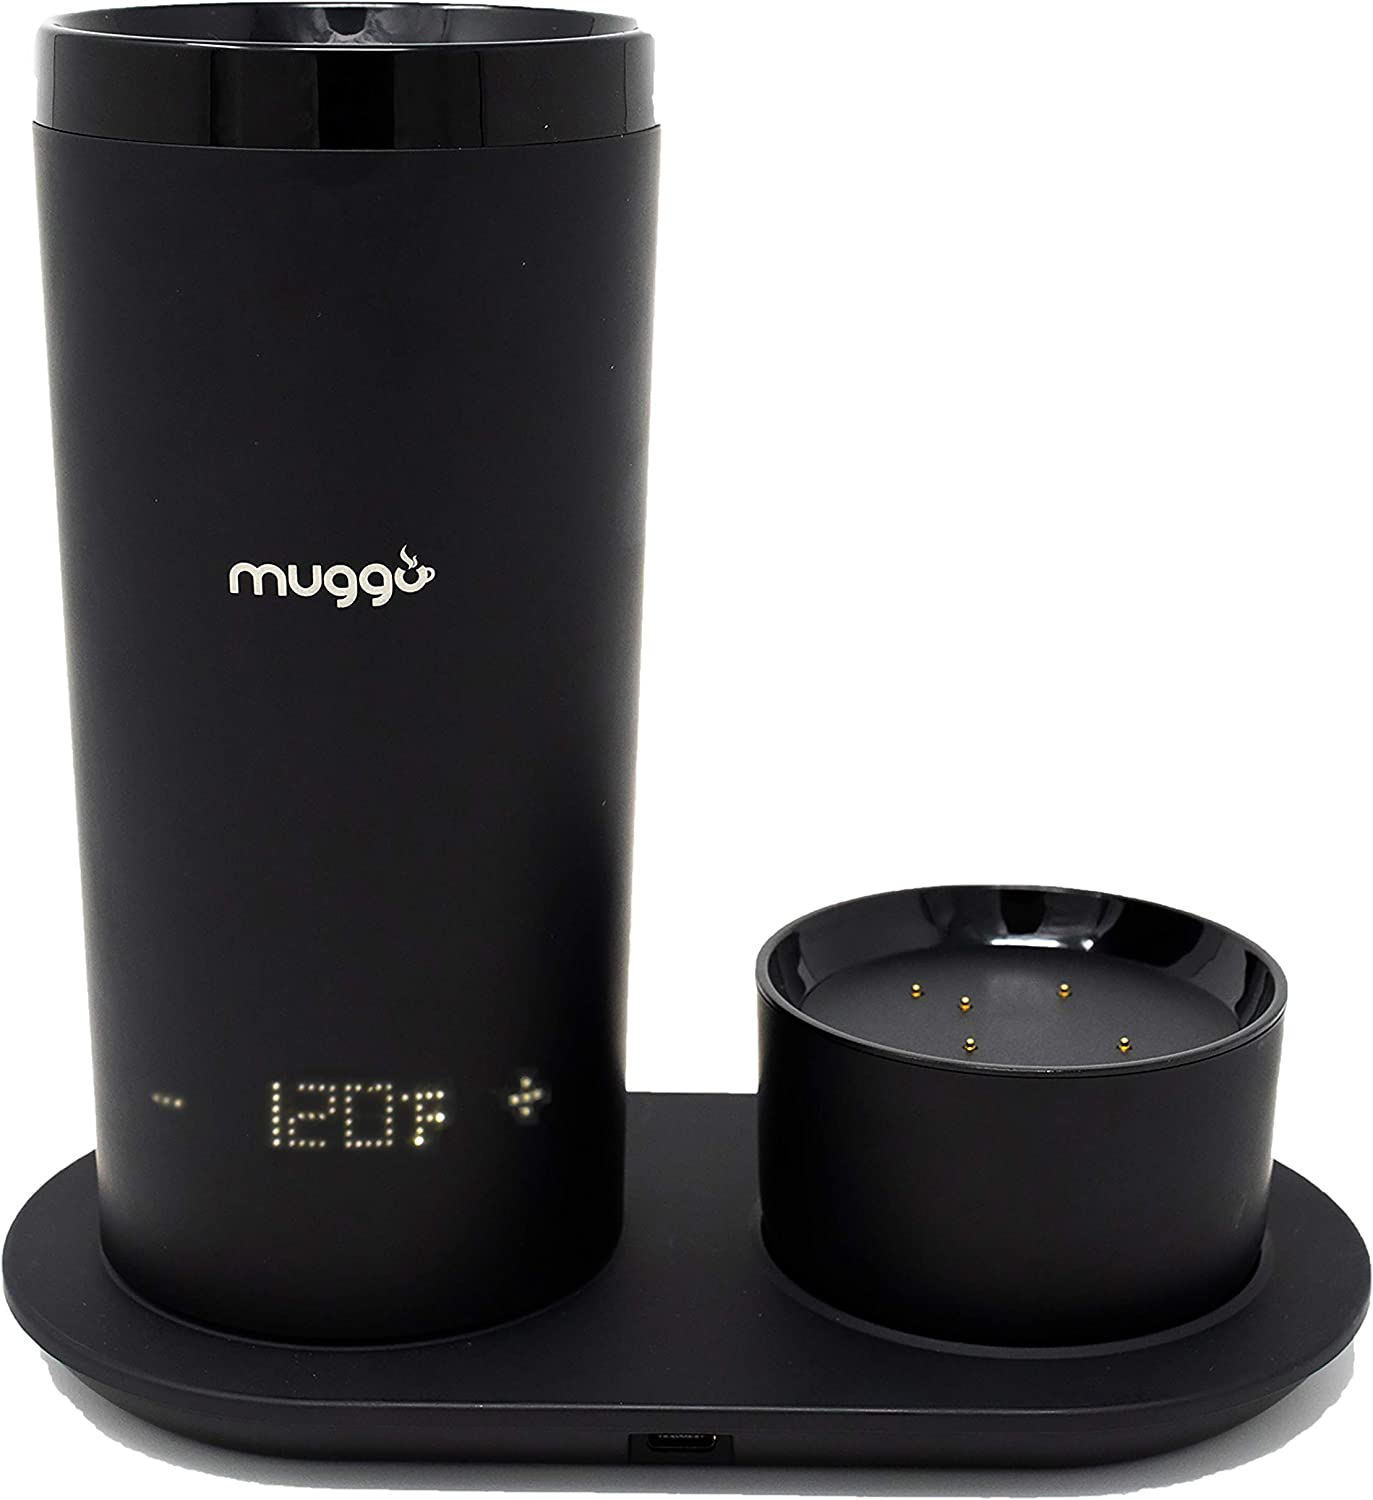 Muggo 12 oz Temperature Control Mug with 3 hour Battery Life, Tea, Coffee, Hot Beverage Warmer, Heated Travel Mug with Dual Charger